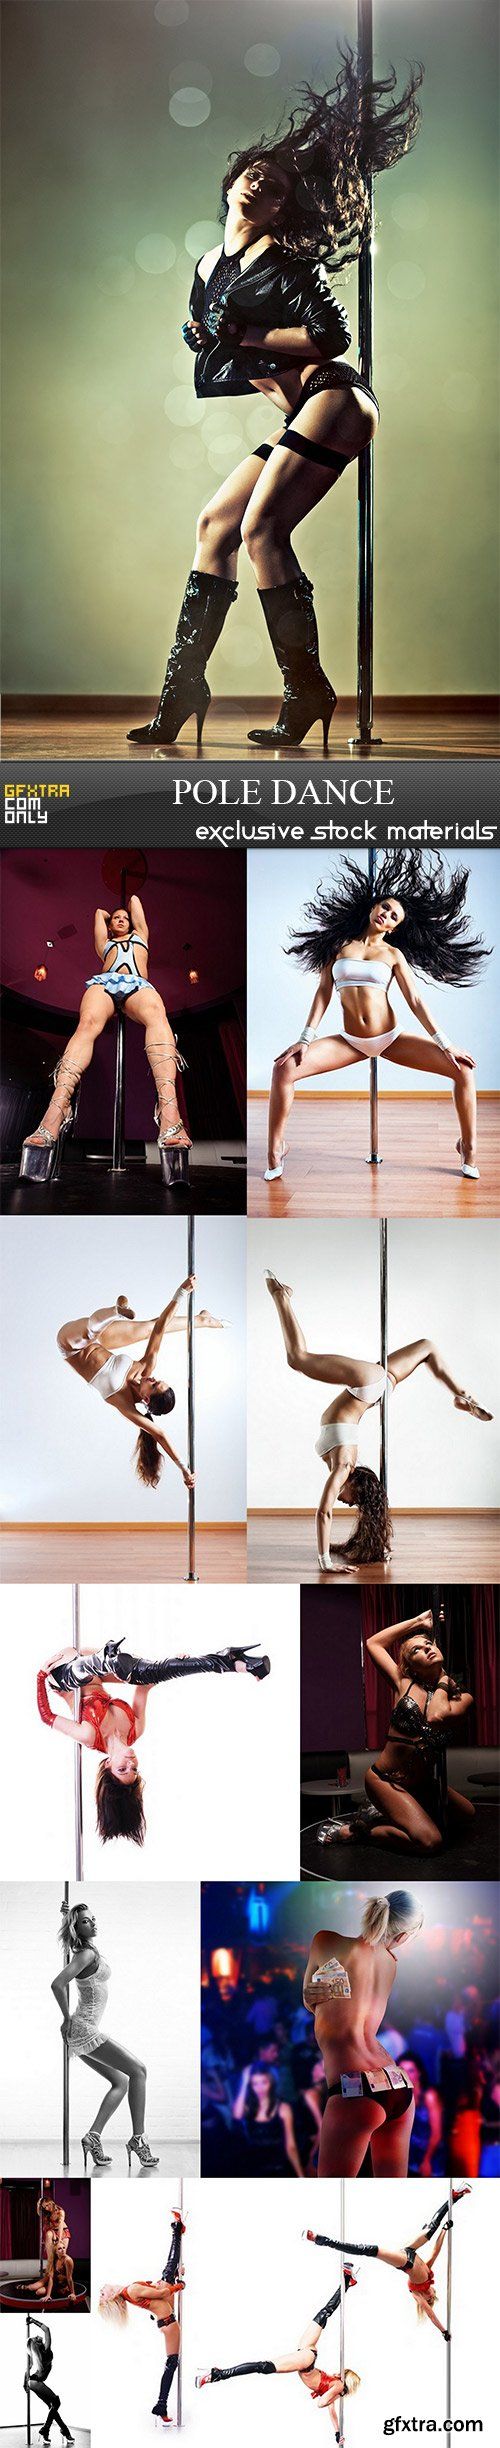 Pole dance - 13 UHQ JPEG